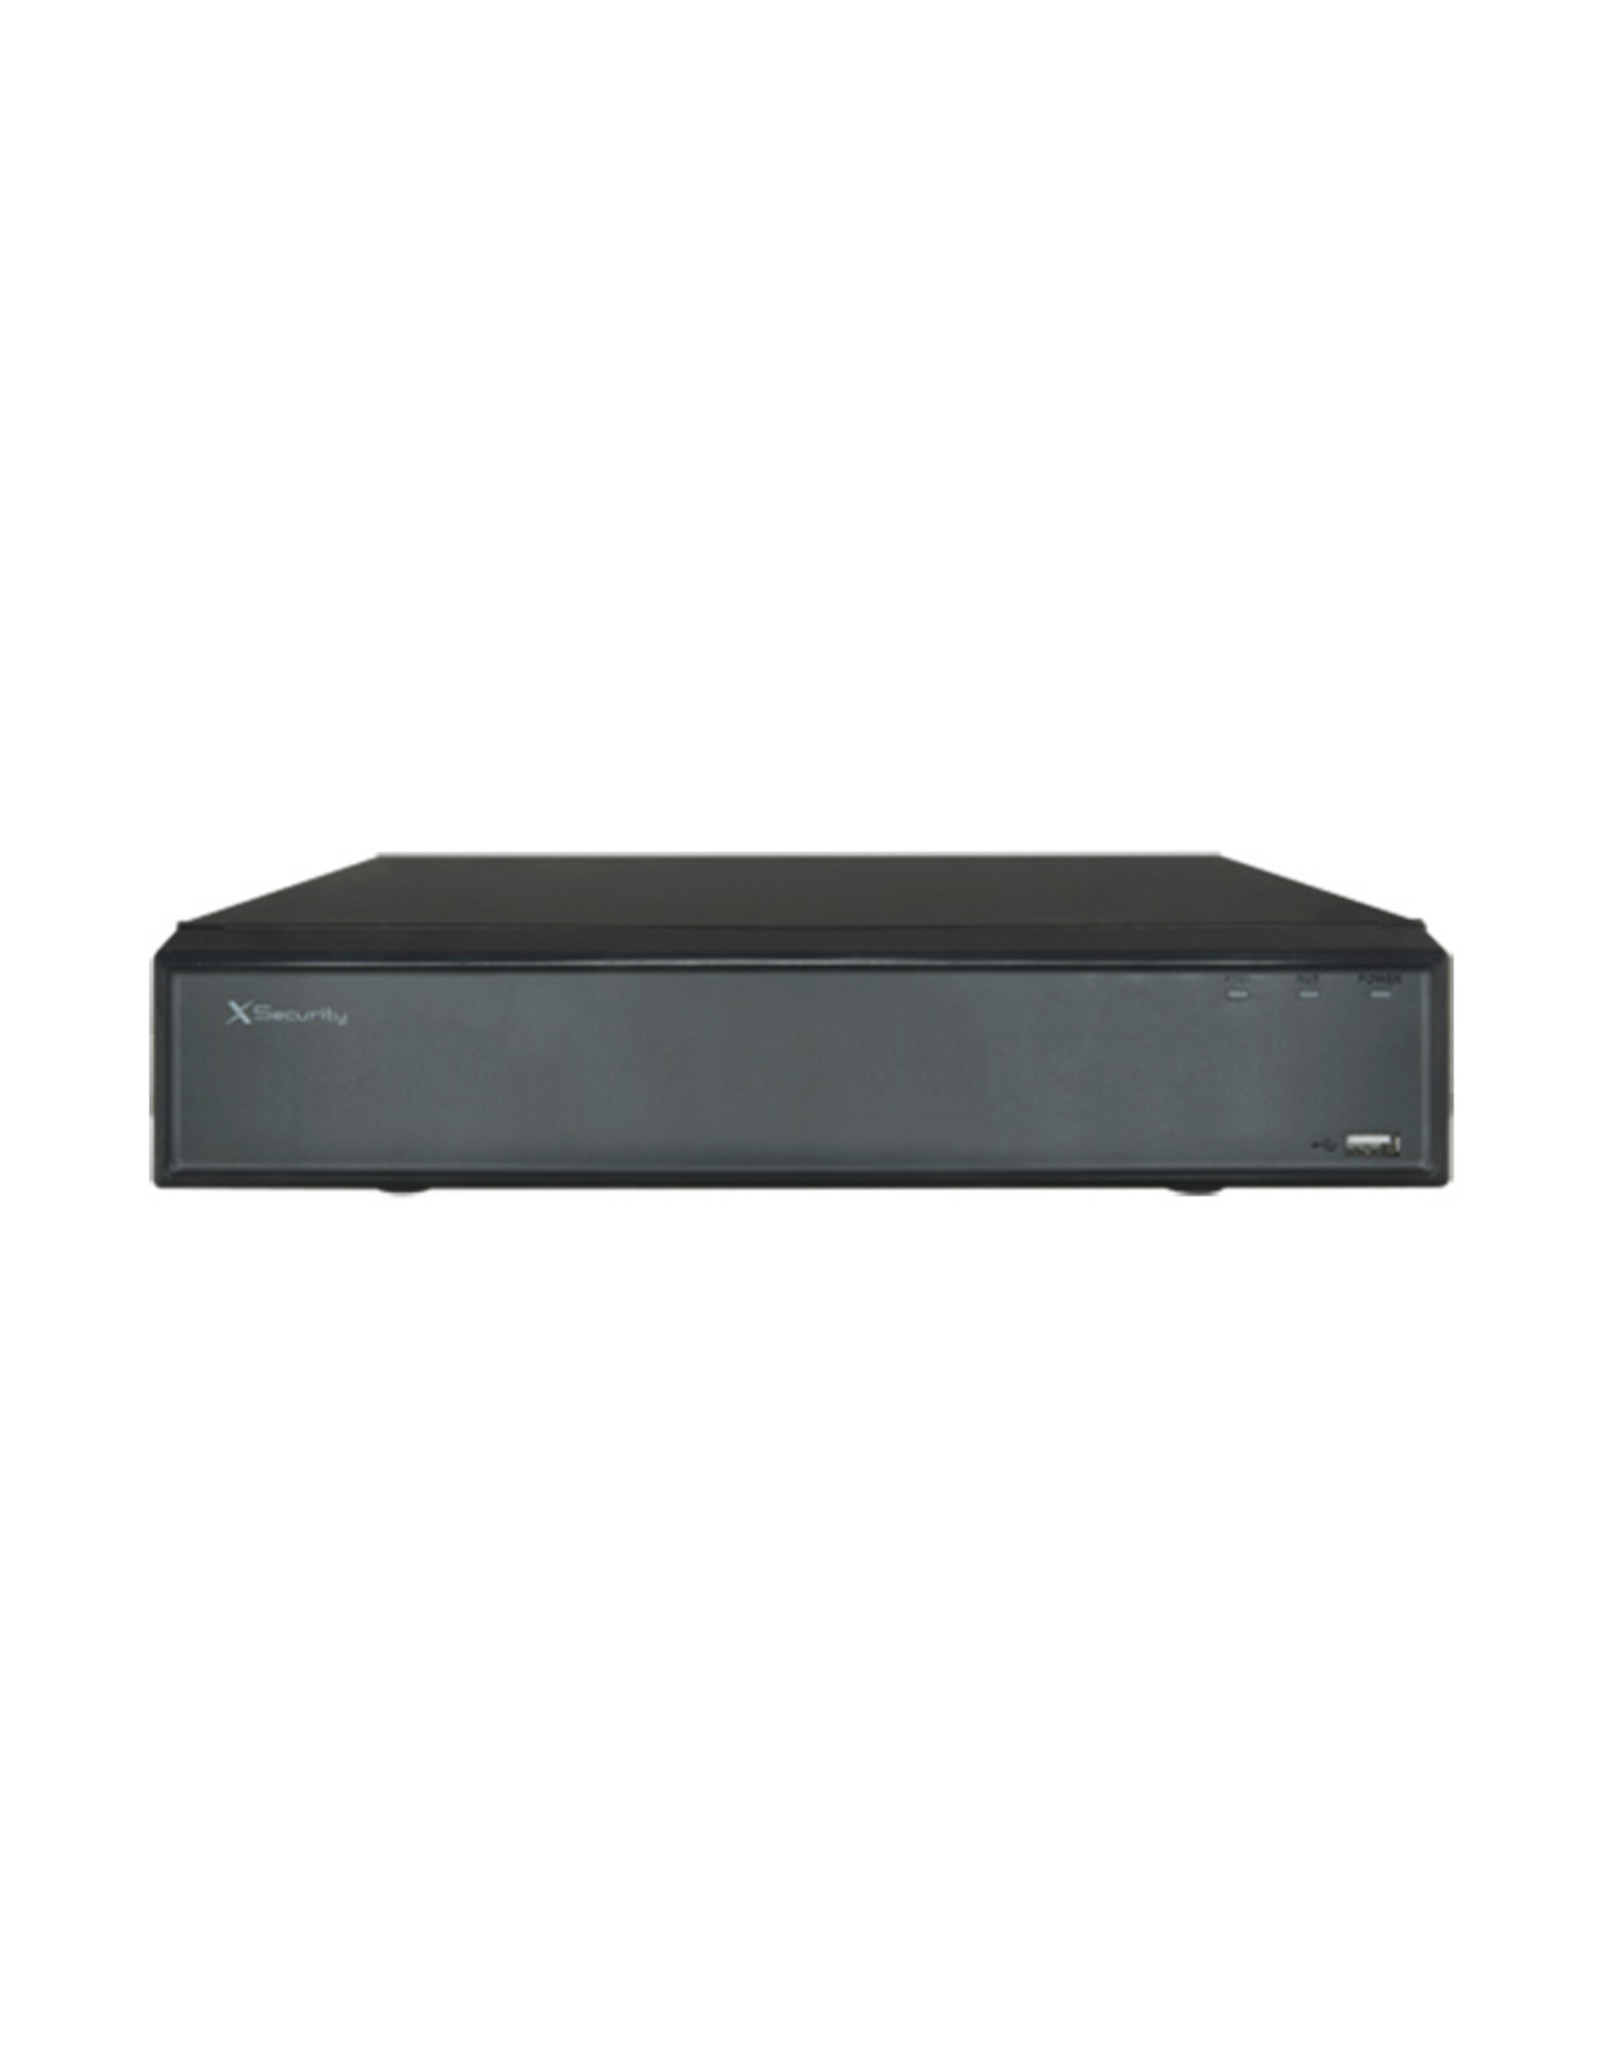 X-Security X-Security XS-NVR2108-4KH